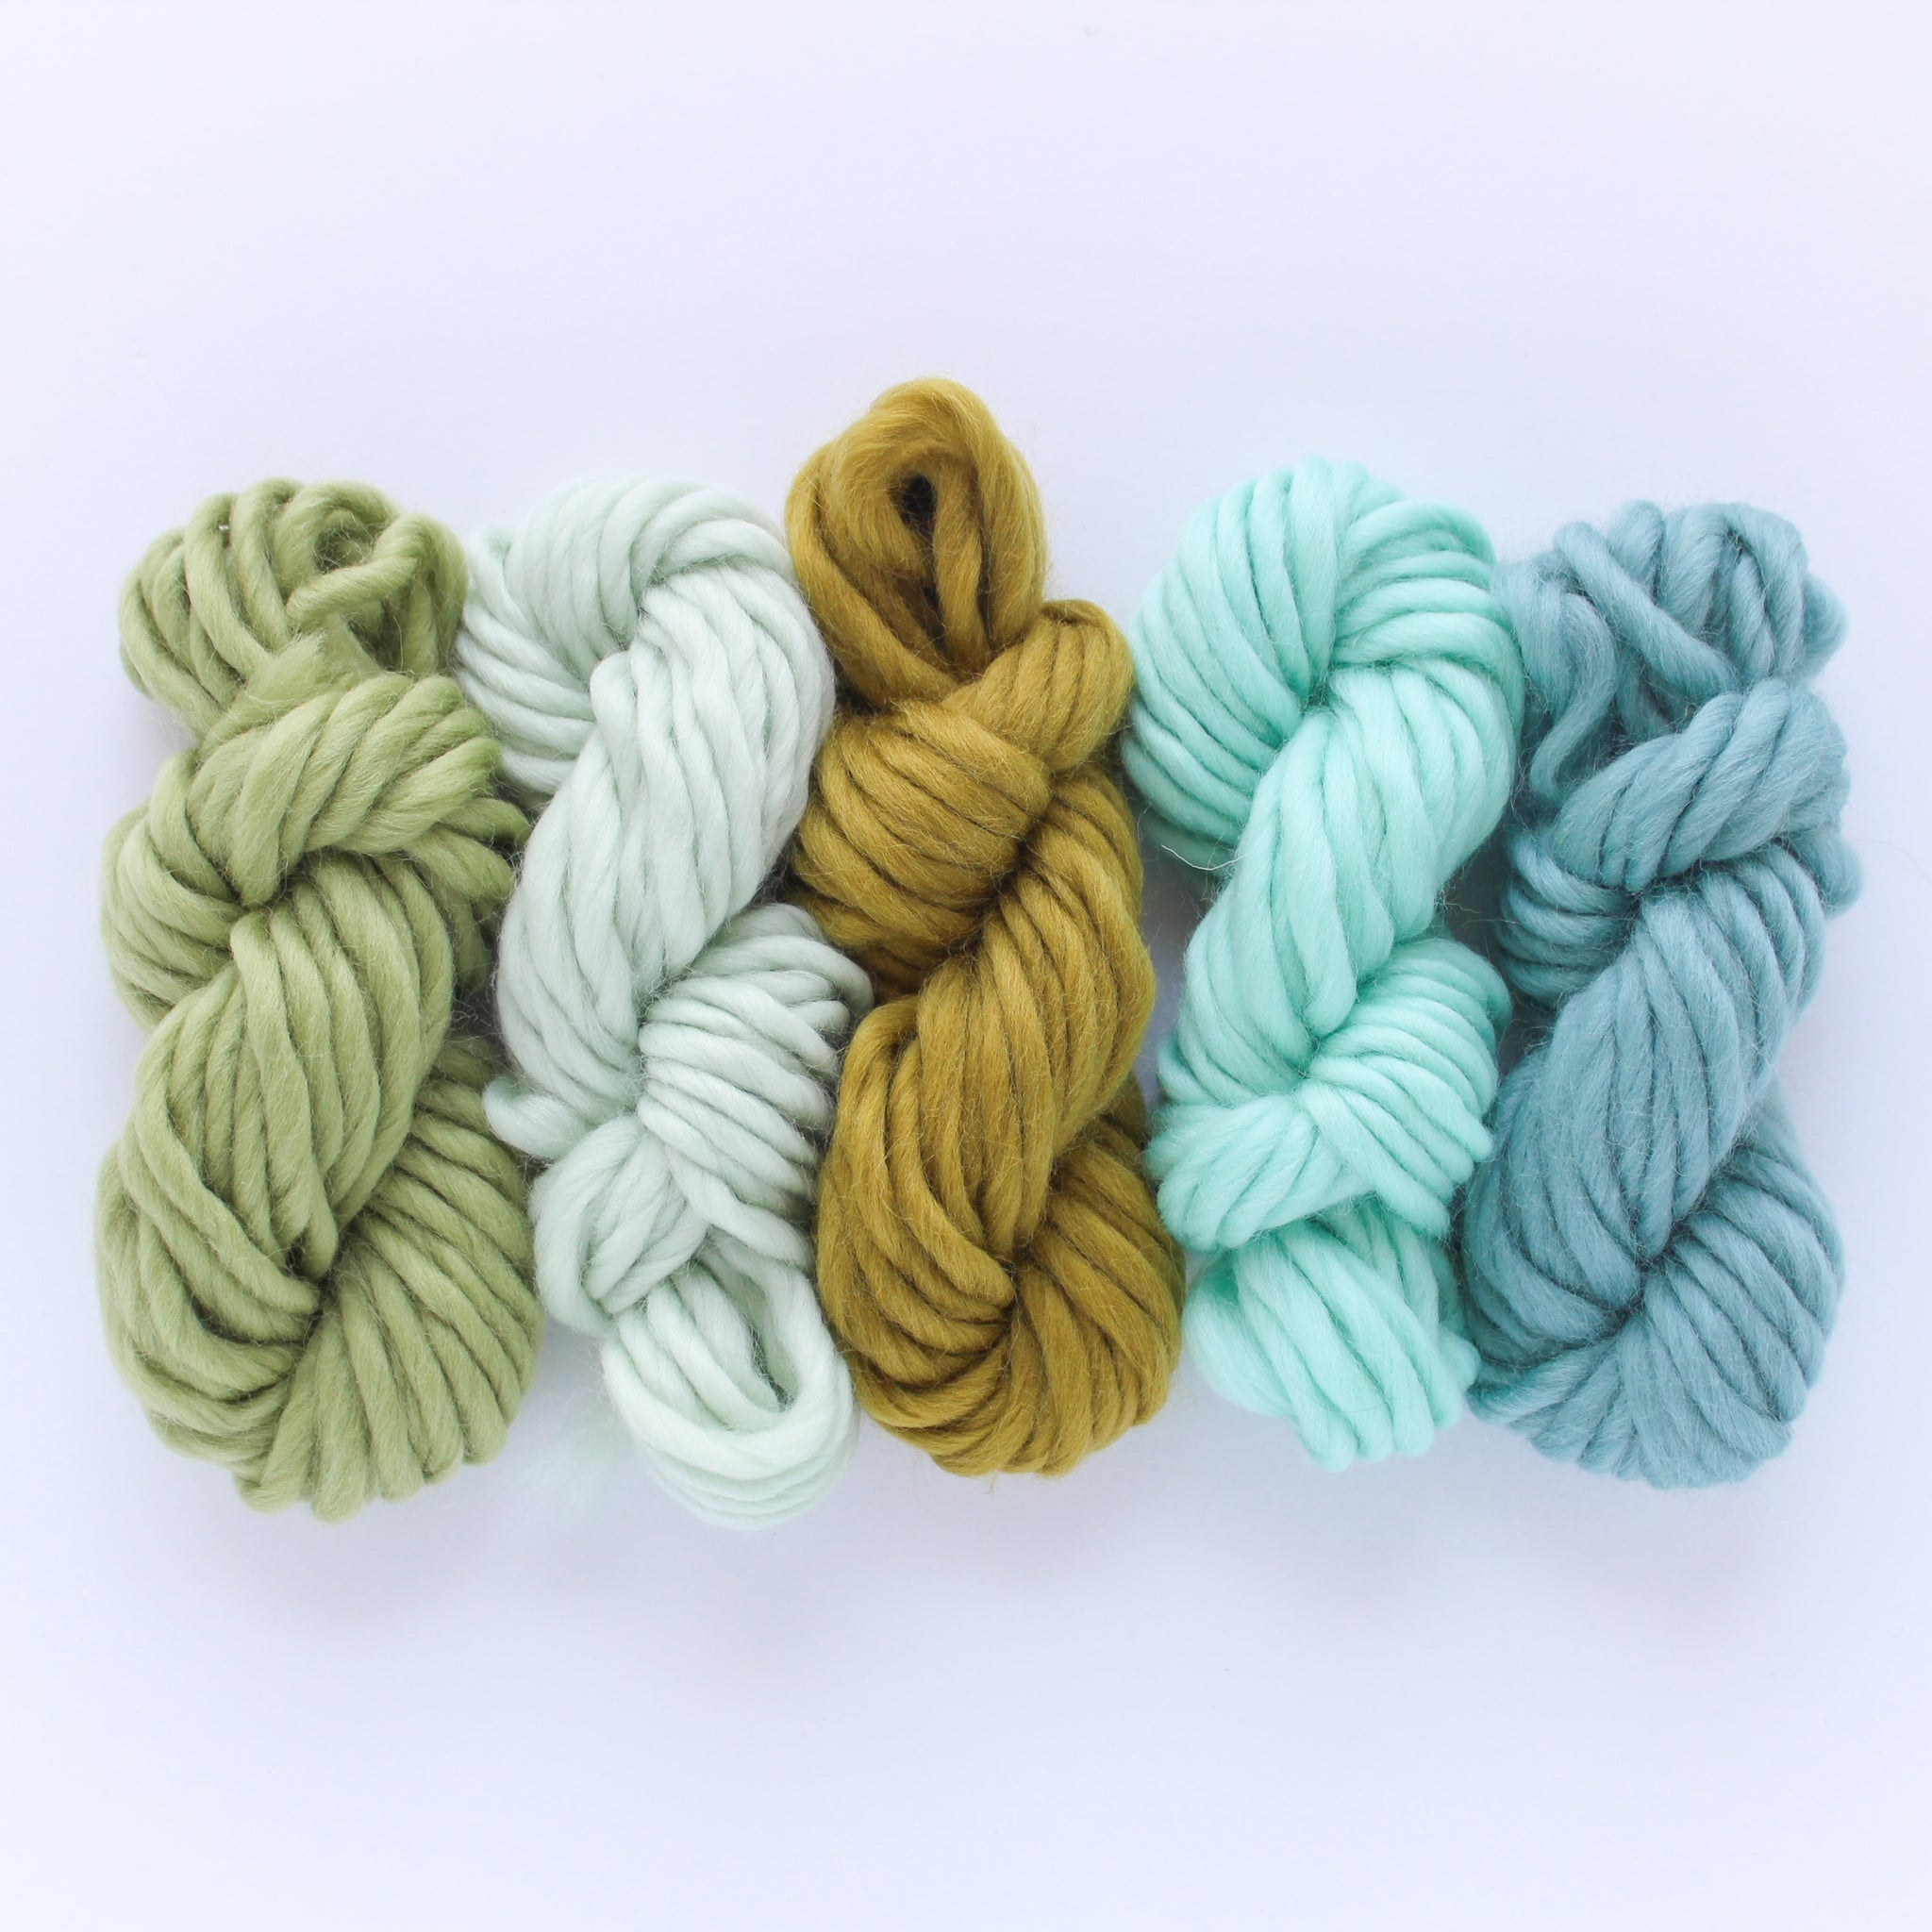 Lochness Yarn Pack